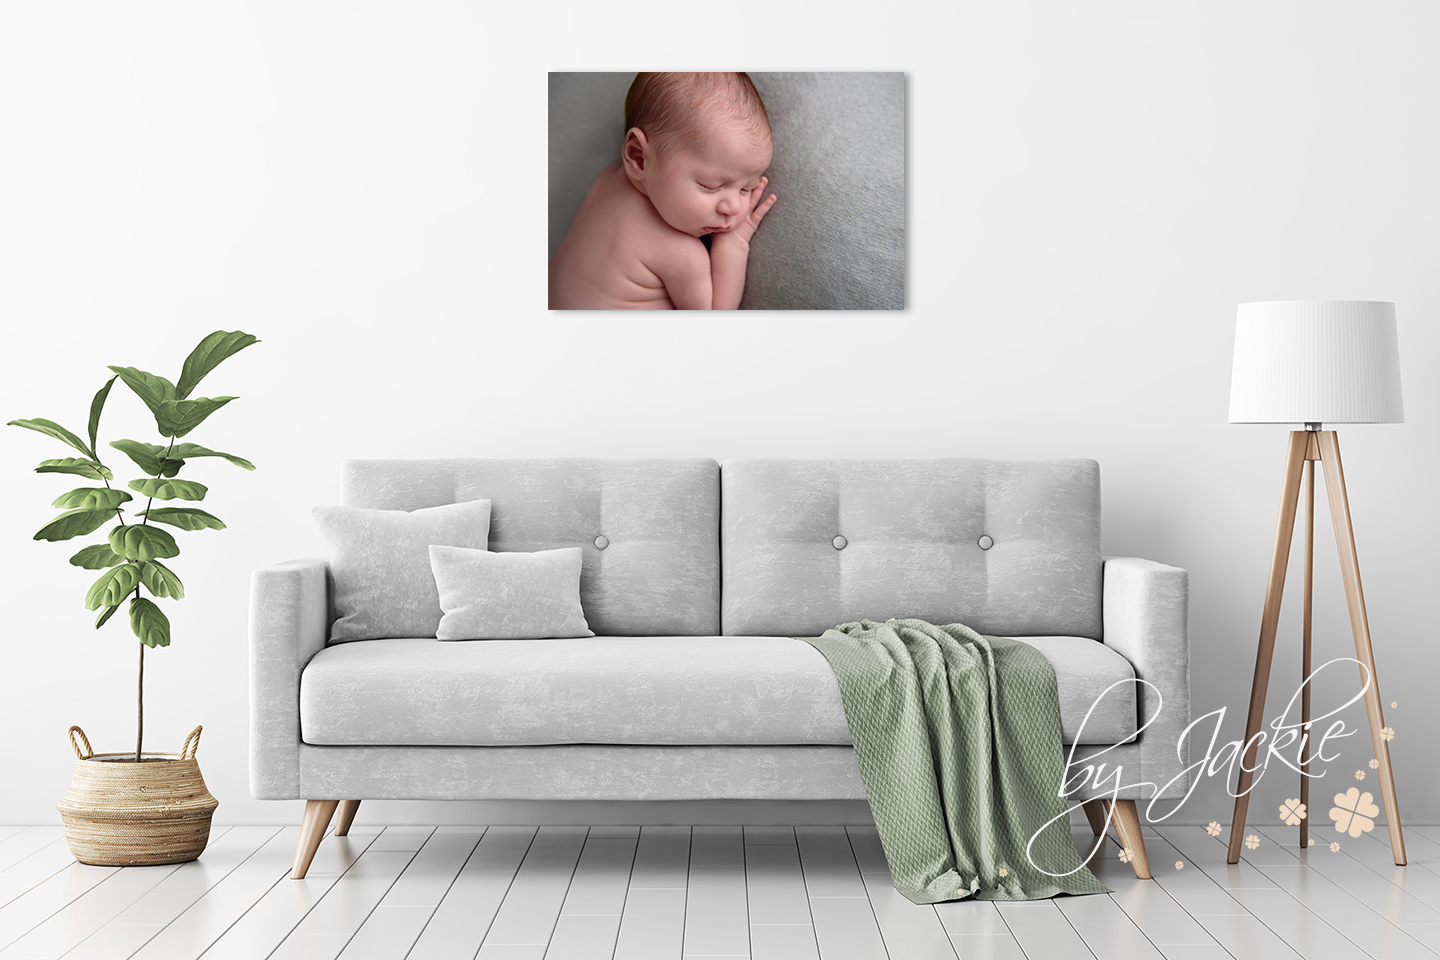 Bamboo Panel wall display of newborn baby girl by Babies By Jackie Photography in Market Weighton, near Pocklington, York and Hull, Yorkshire UK